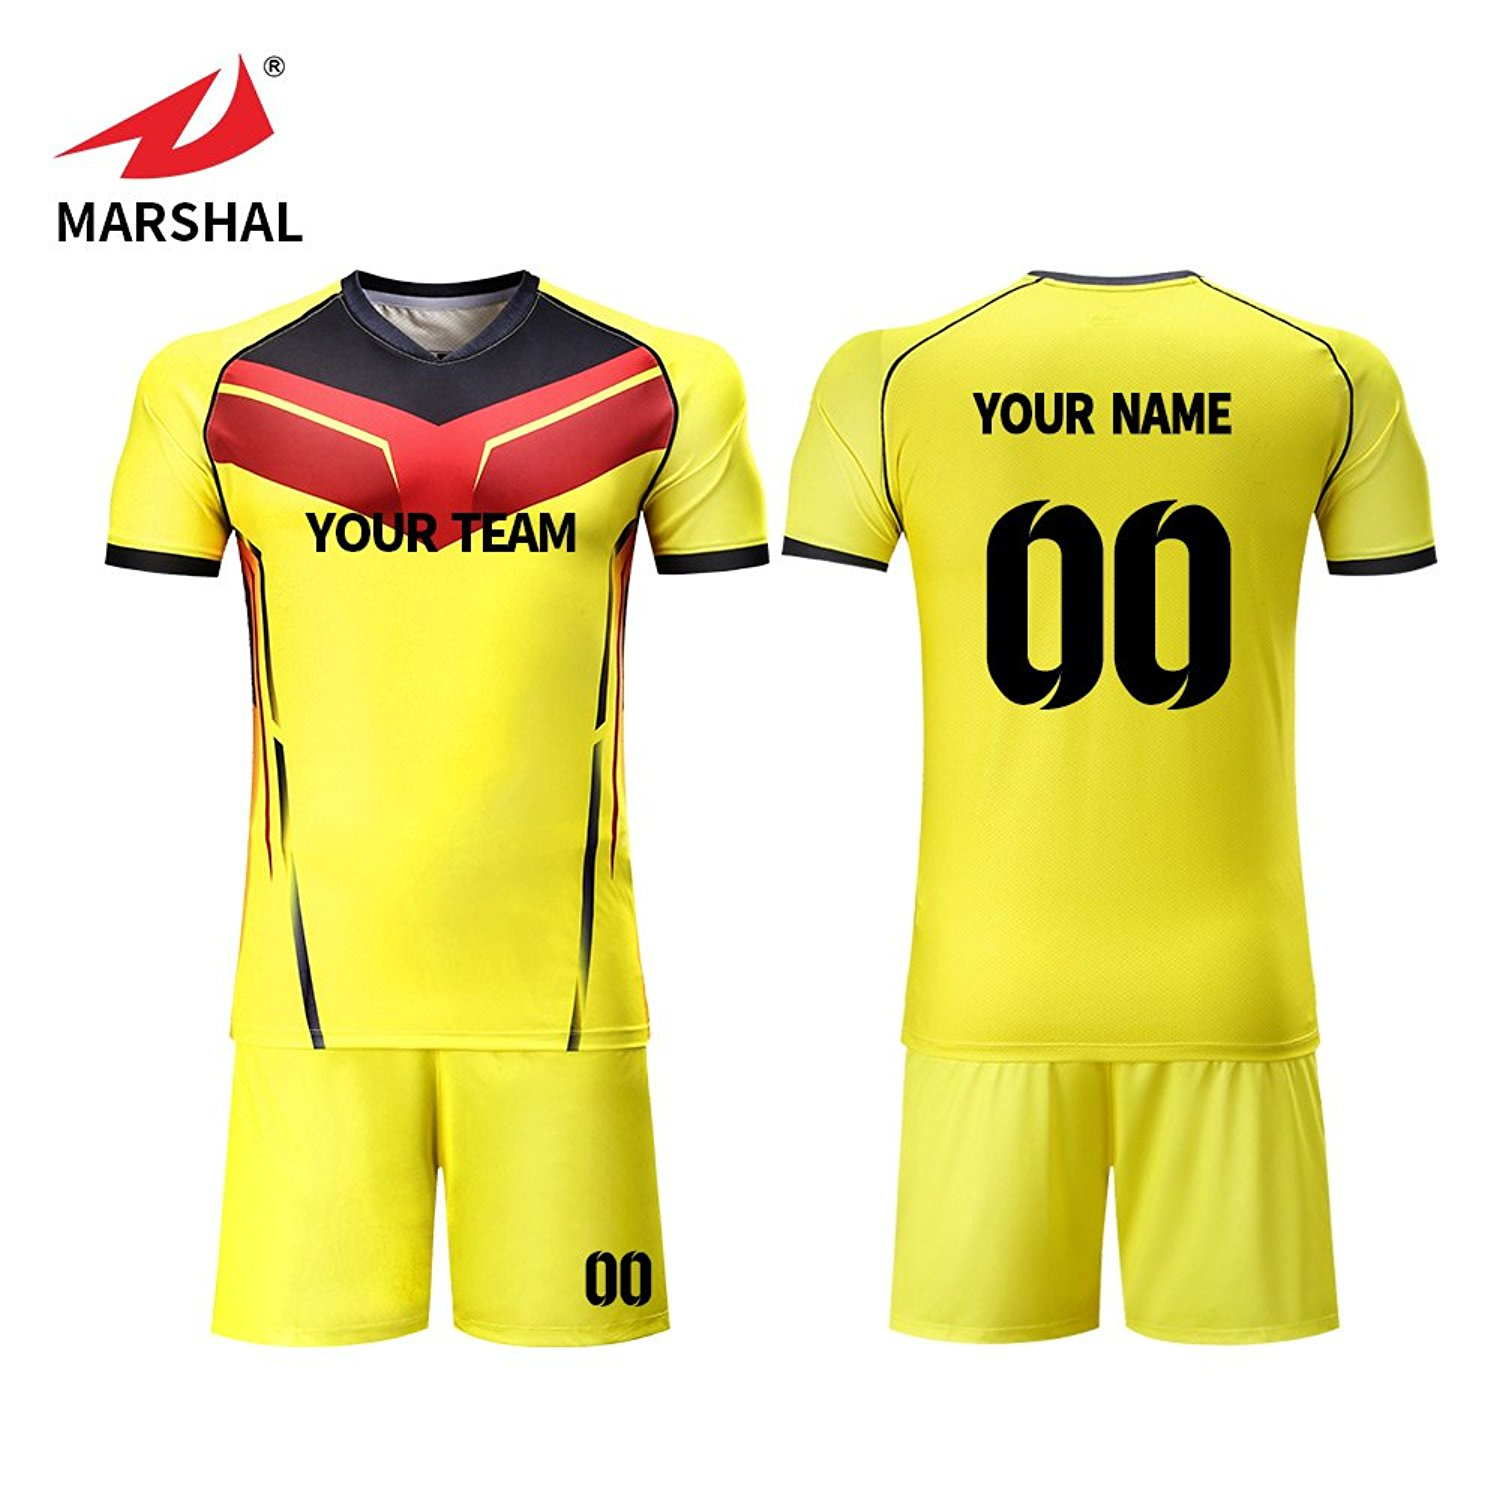 Cheap Custom Volleyball Jerseys Design Find Custom Volleyball